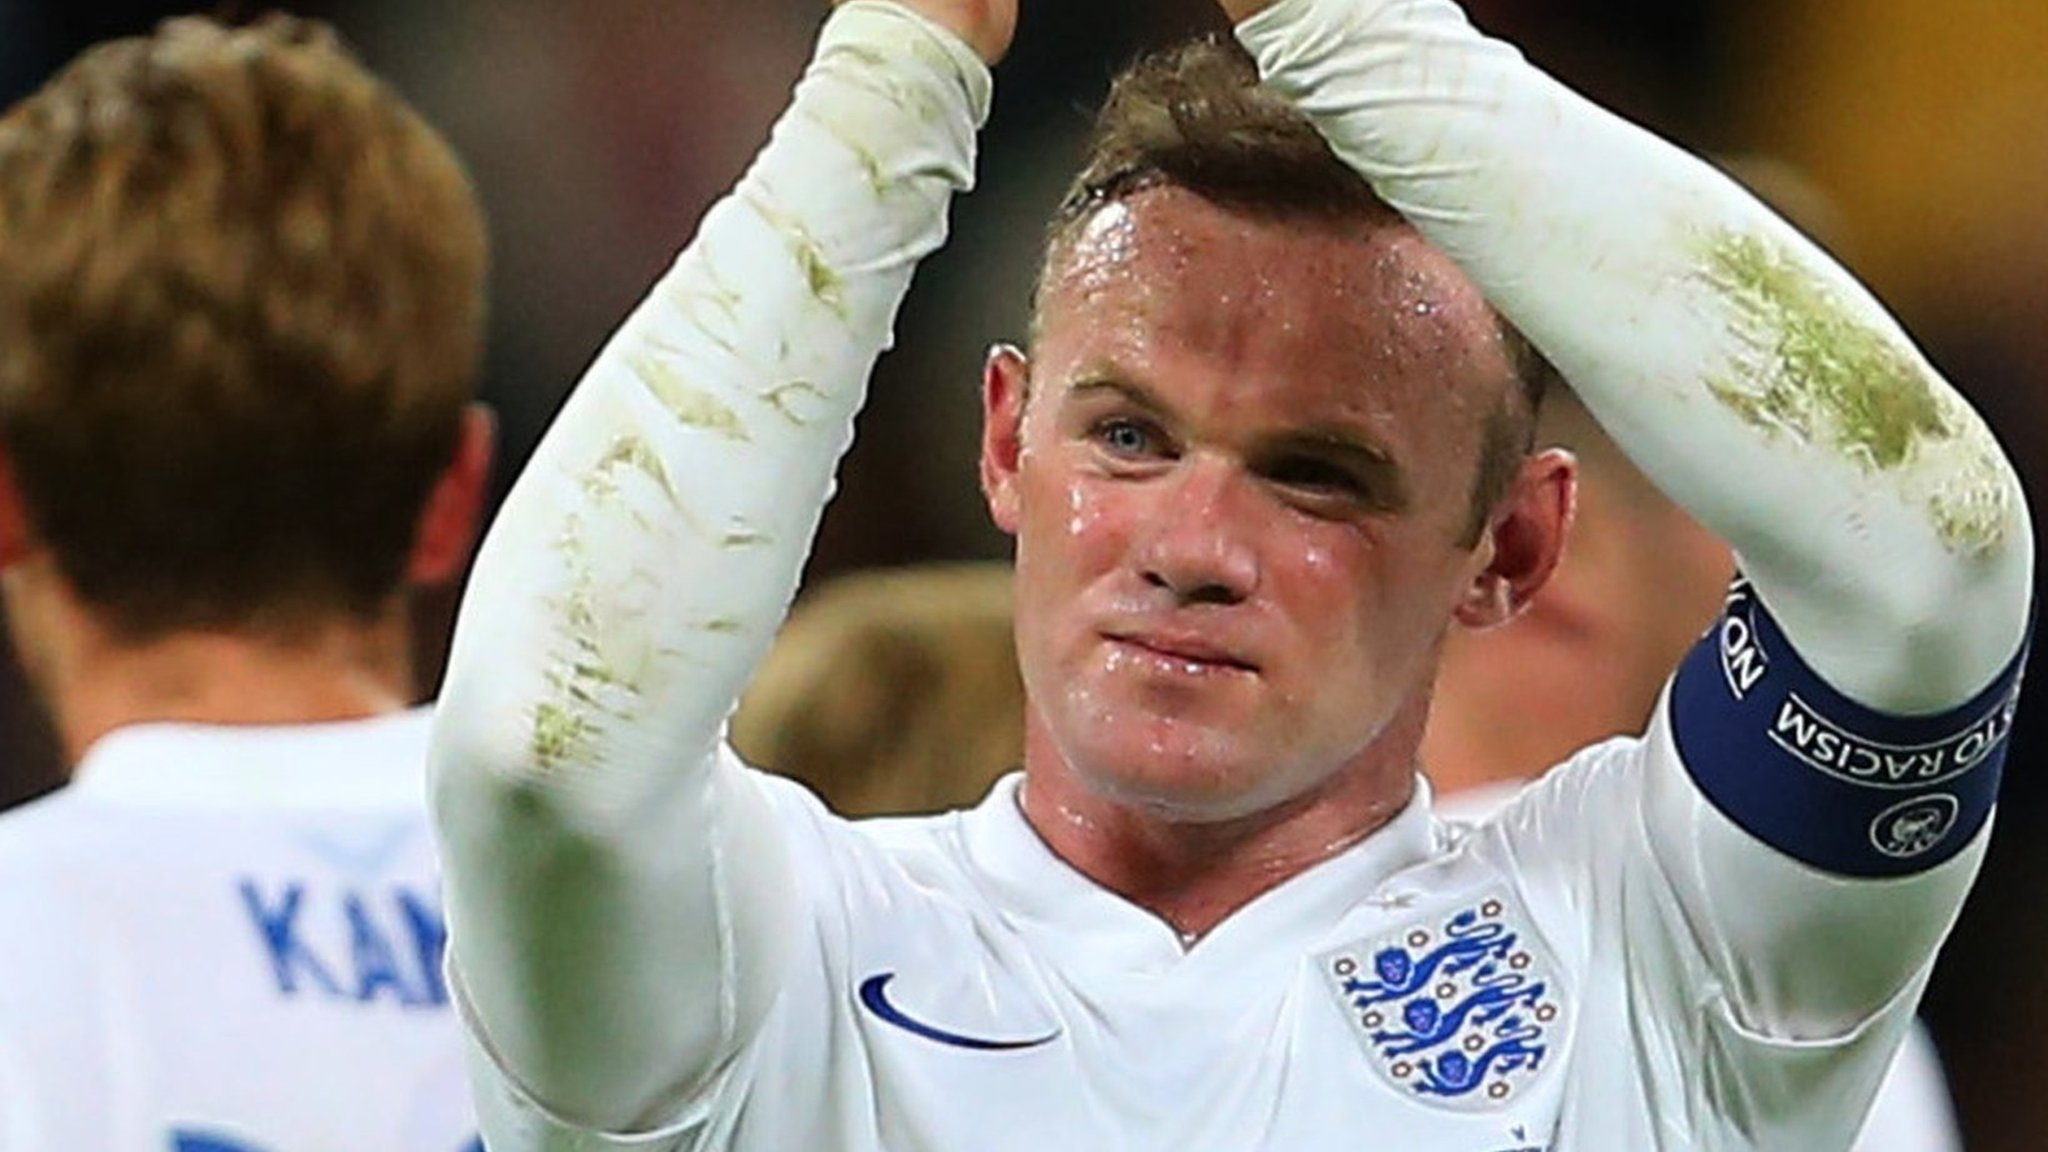 Wayne Rooney: England striker says it will be 'strange' playing at Wembley